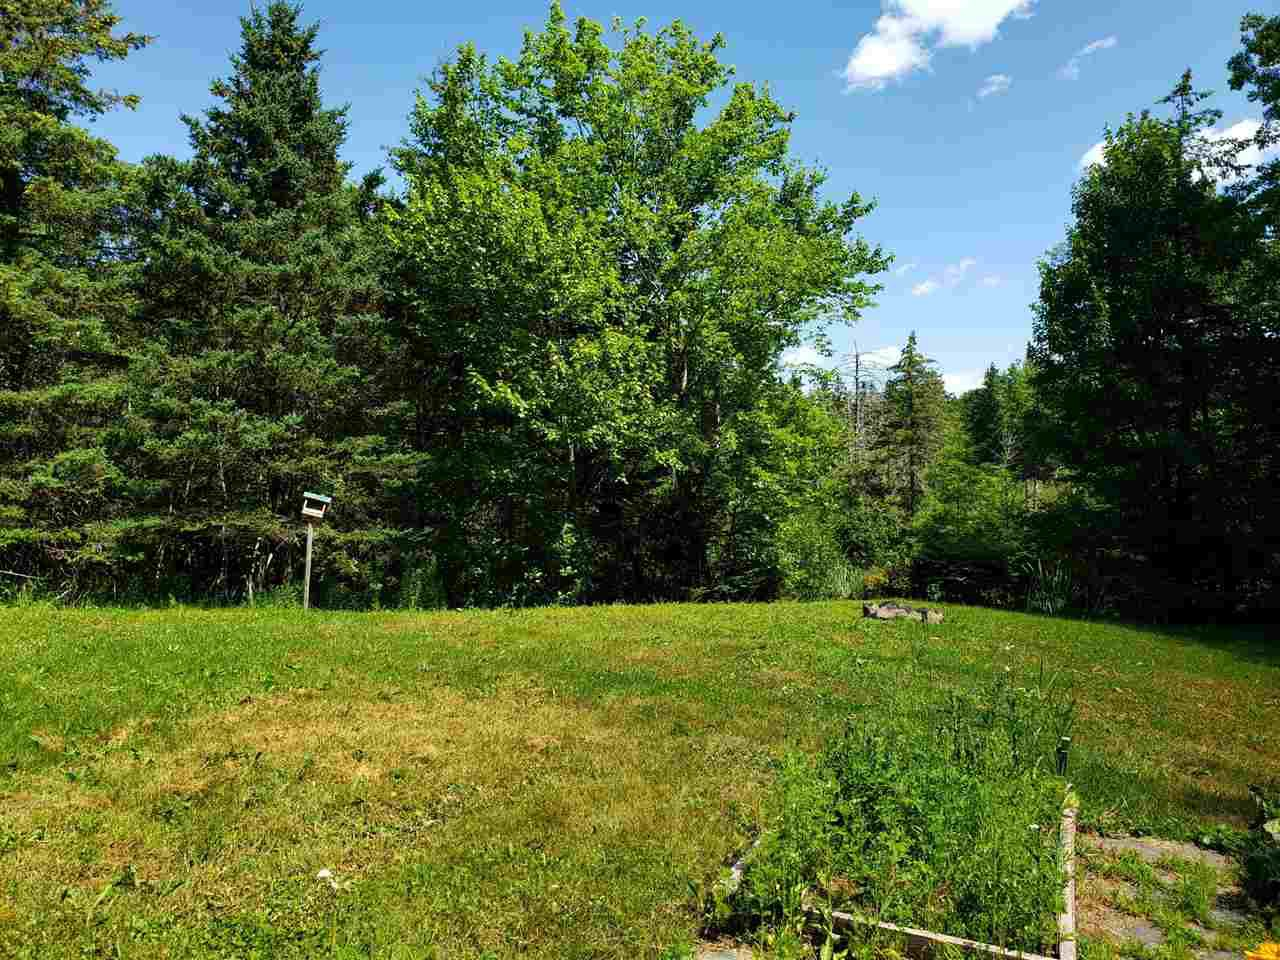 Photo 7: Photos: 2968 Aylesford Road in Lake Paul: 404-Kings County Residential for sale (Annapolis Valley)  : MLS®# 201915287